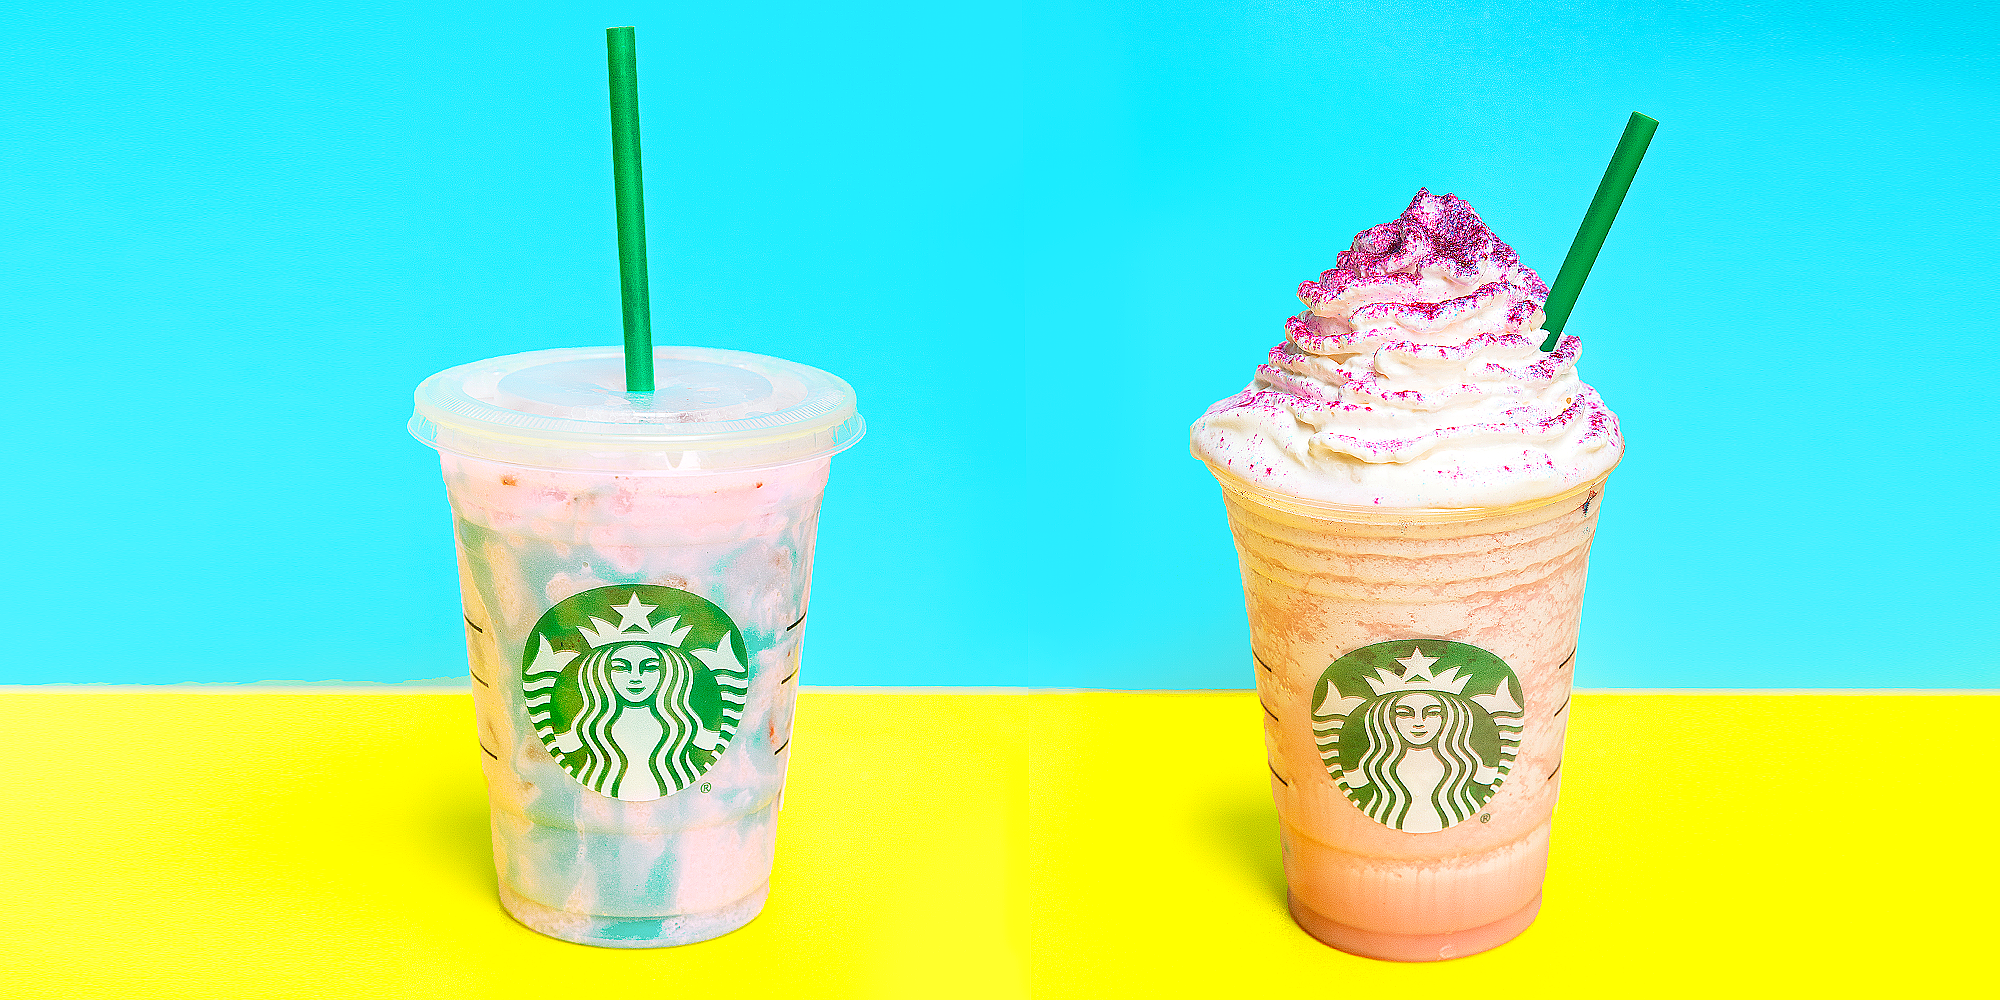 How to order a unicorn frappuccino